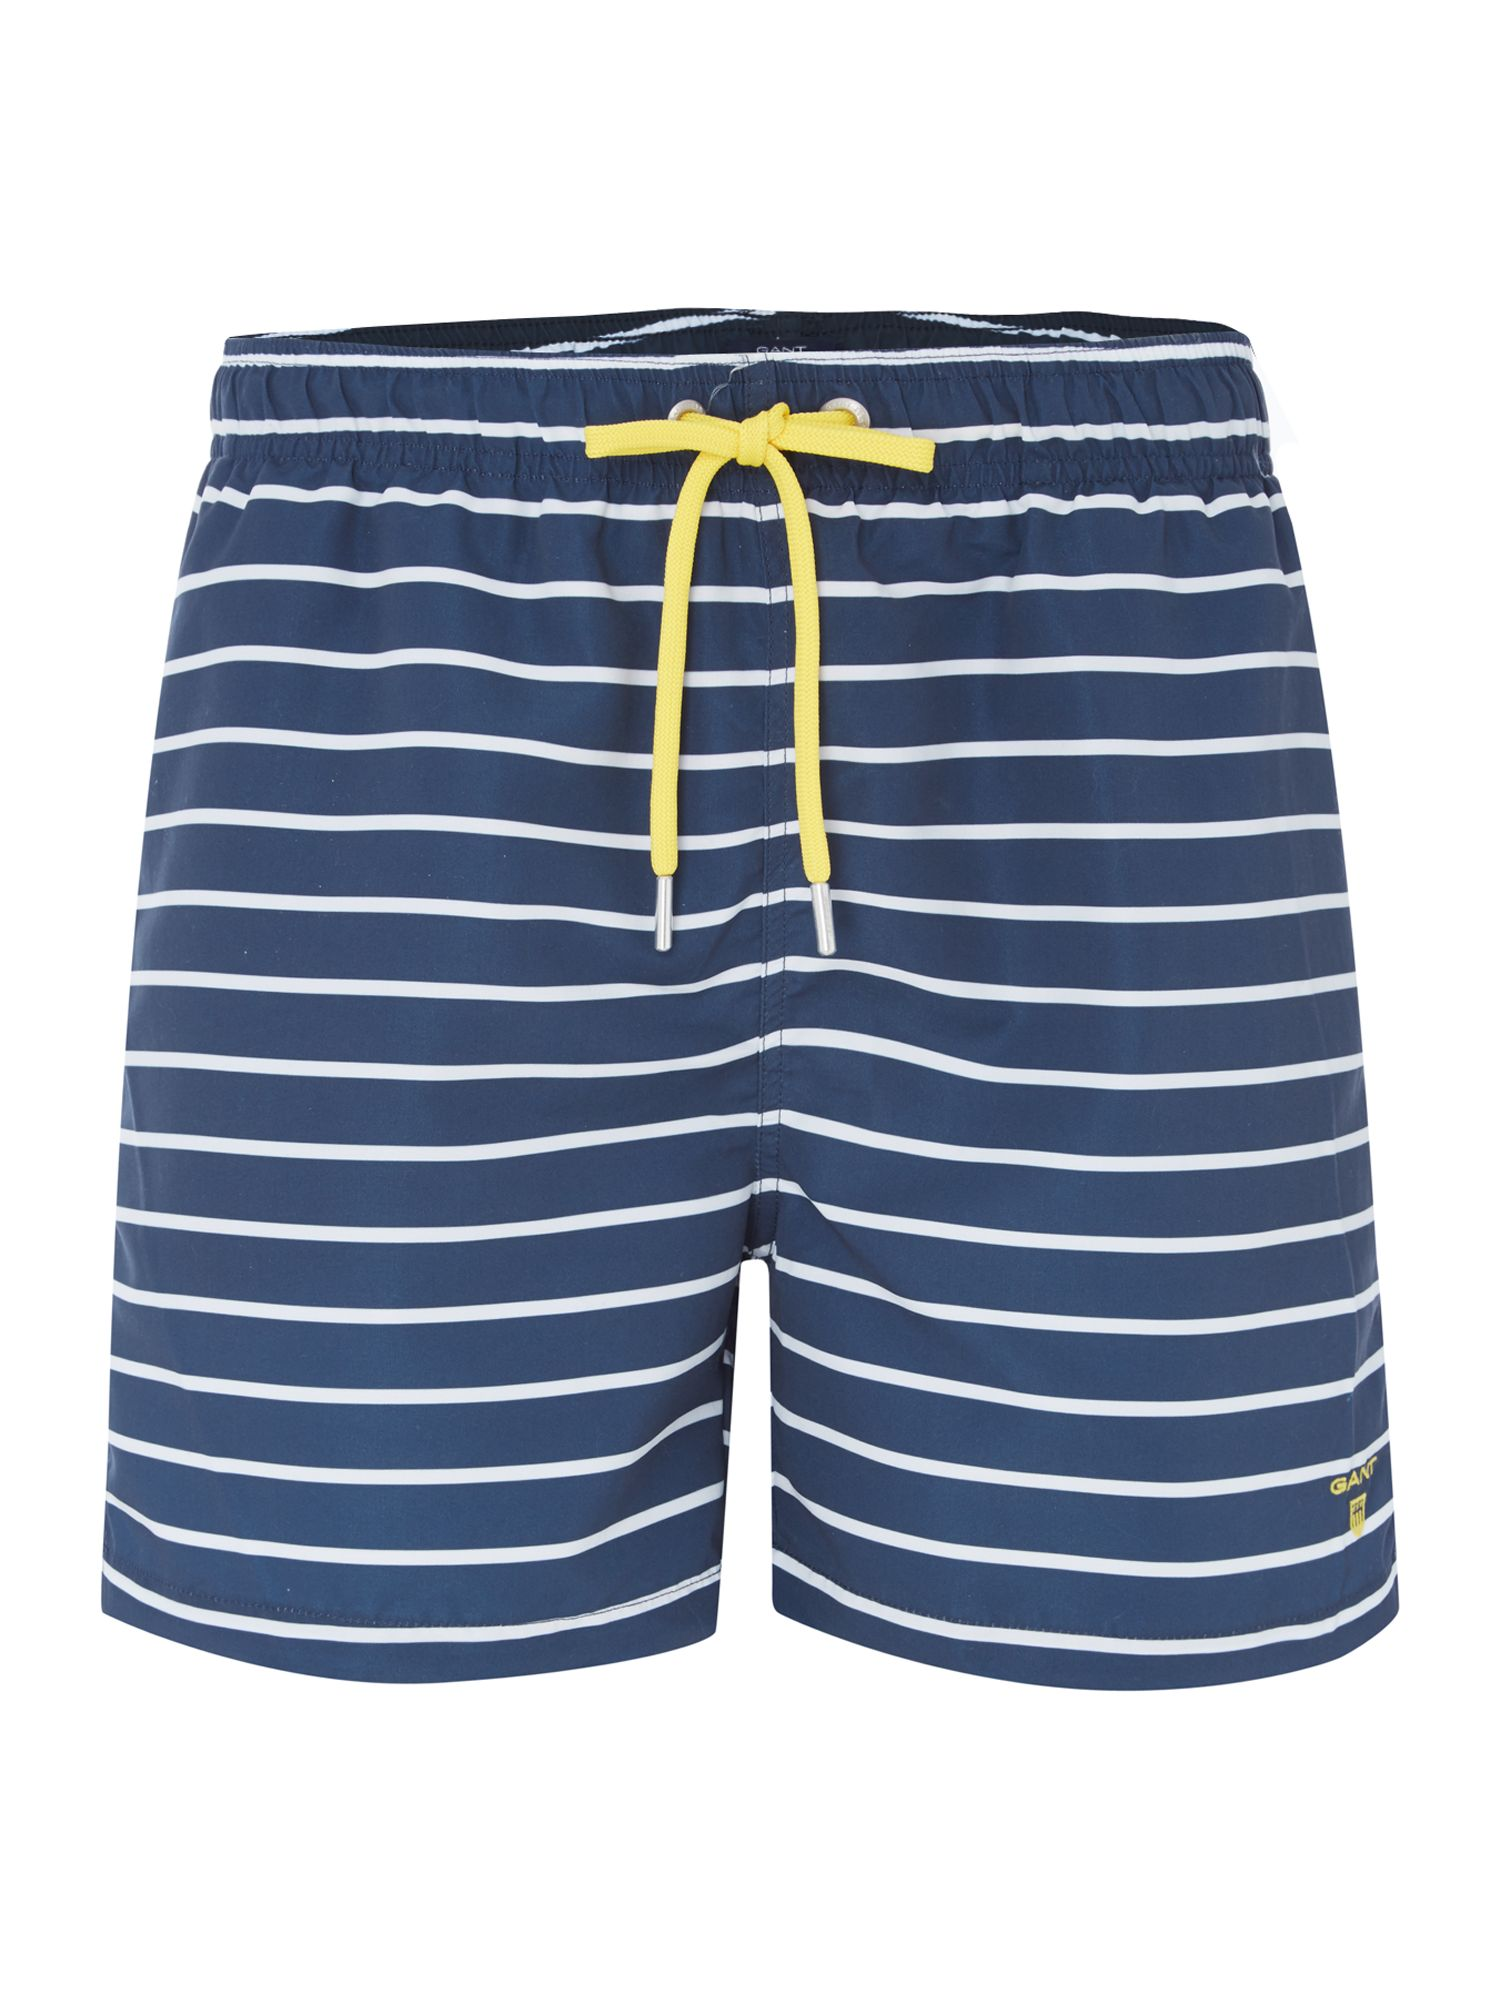 Mens Gant Strip swim shorts Navy